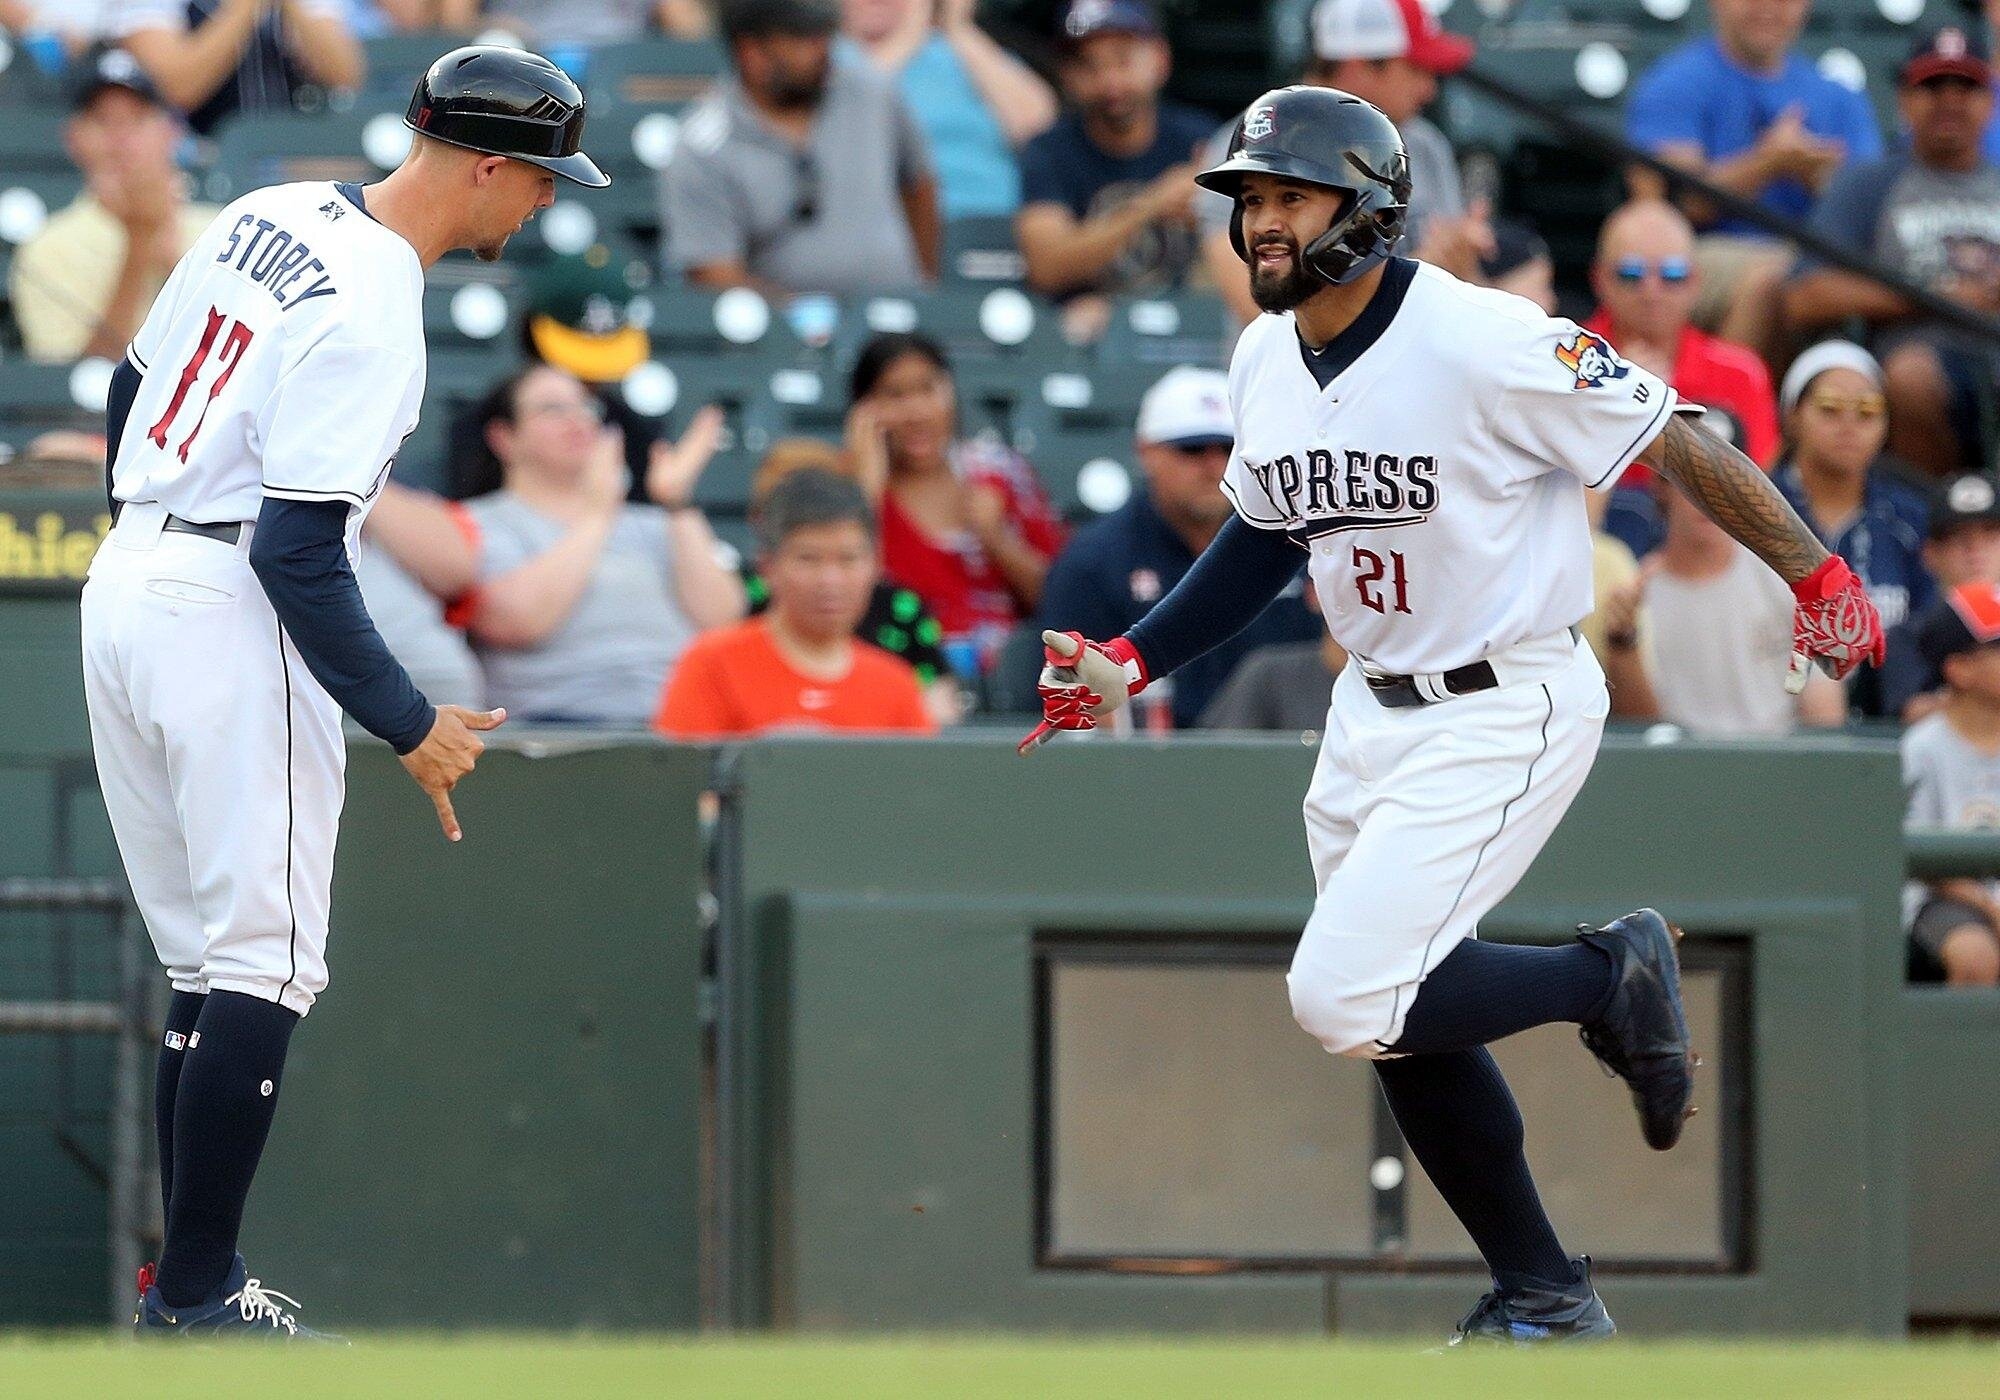 3B Abraham Toro (Longueuil, Que.) hit .424 with a home run and 10 RBIs with the Triple A Round Rock Express before being promoted to the Houston Astros. Before that he hit .306, with 16 homers and 70 RBIs with the Double A Corpus Christi Hooks.